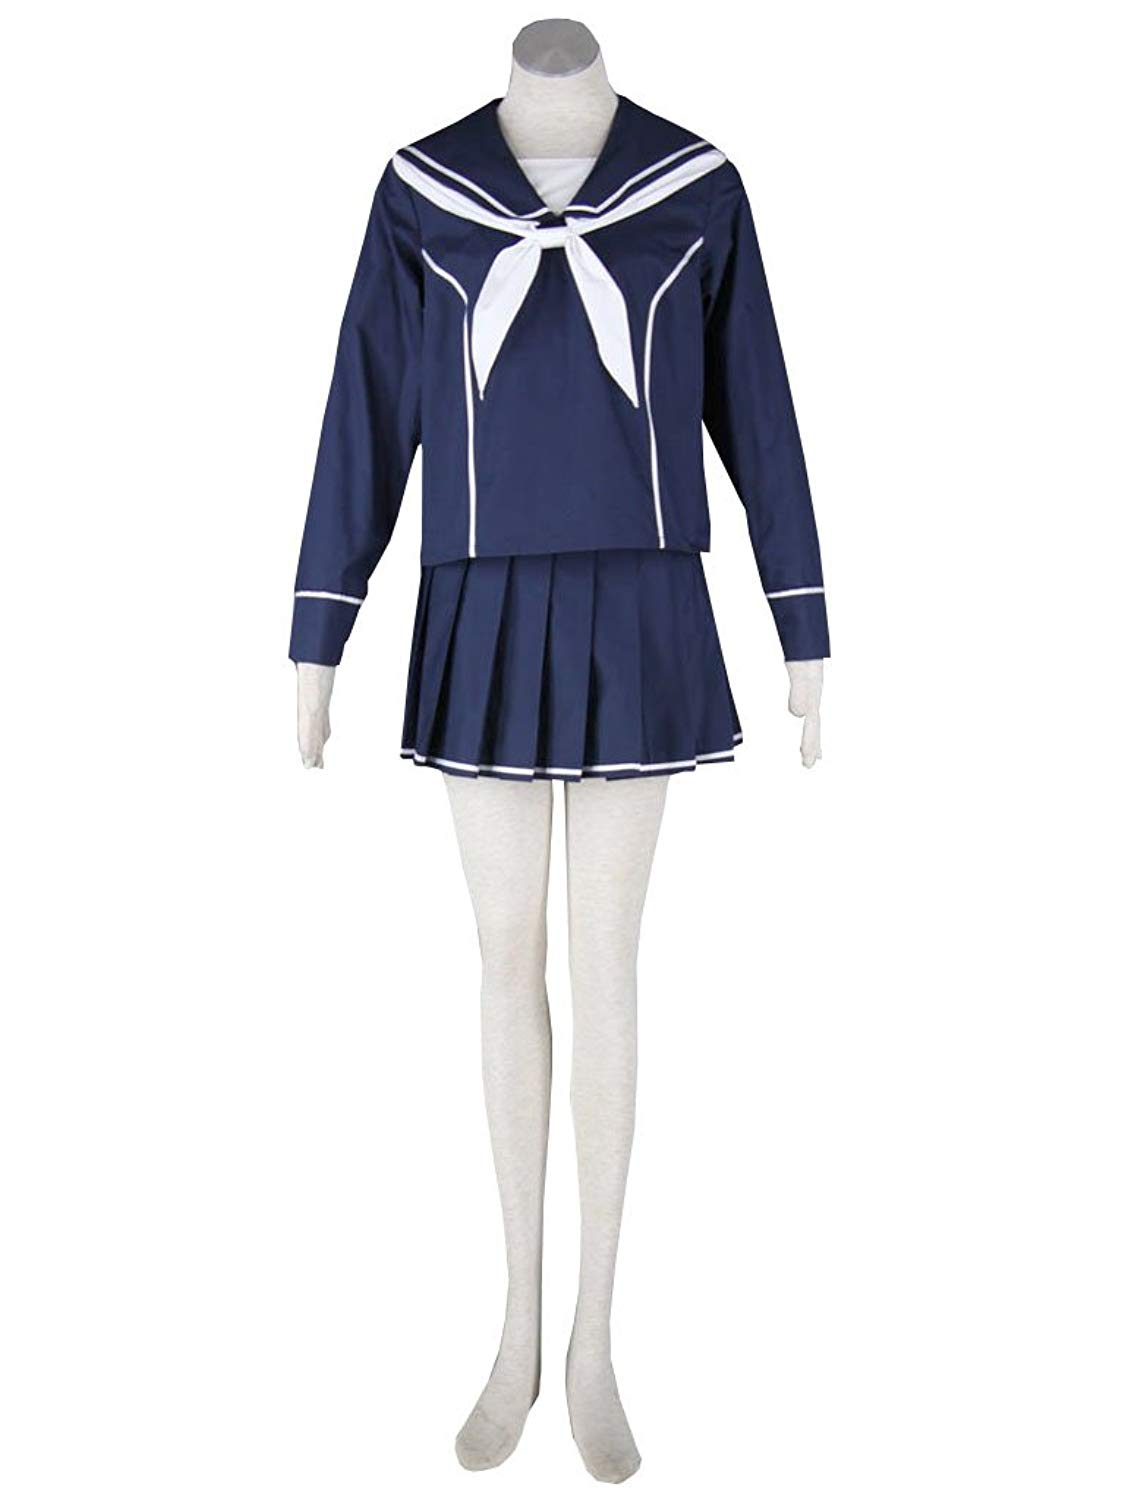 antaina Lovely Navy Lolita Cosplay Pleated Dress Bowknot Sailor School Uniform